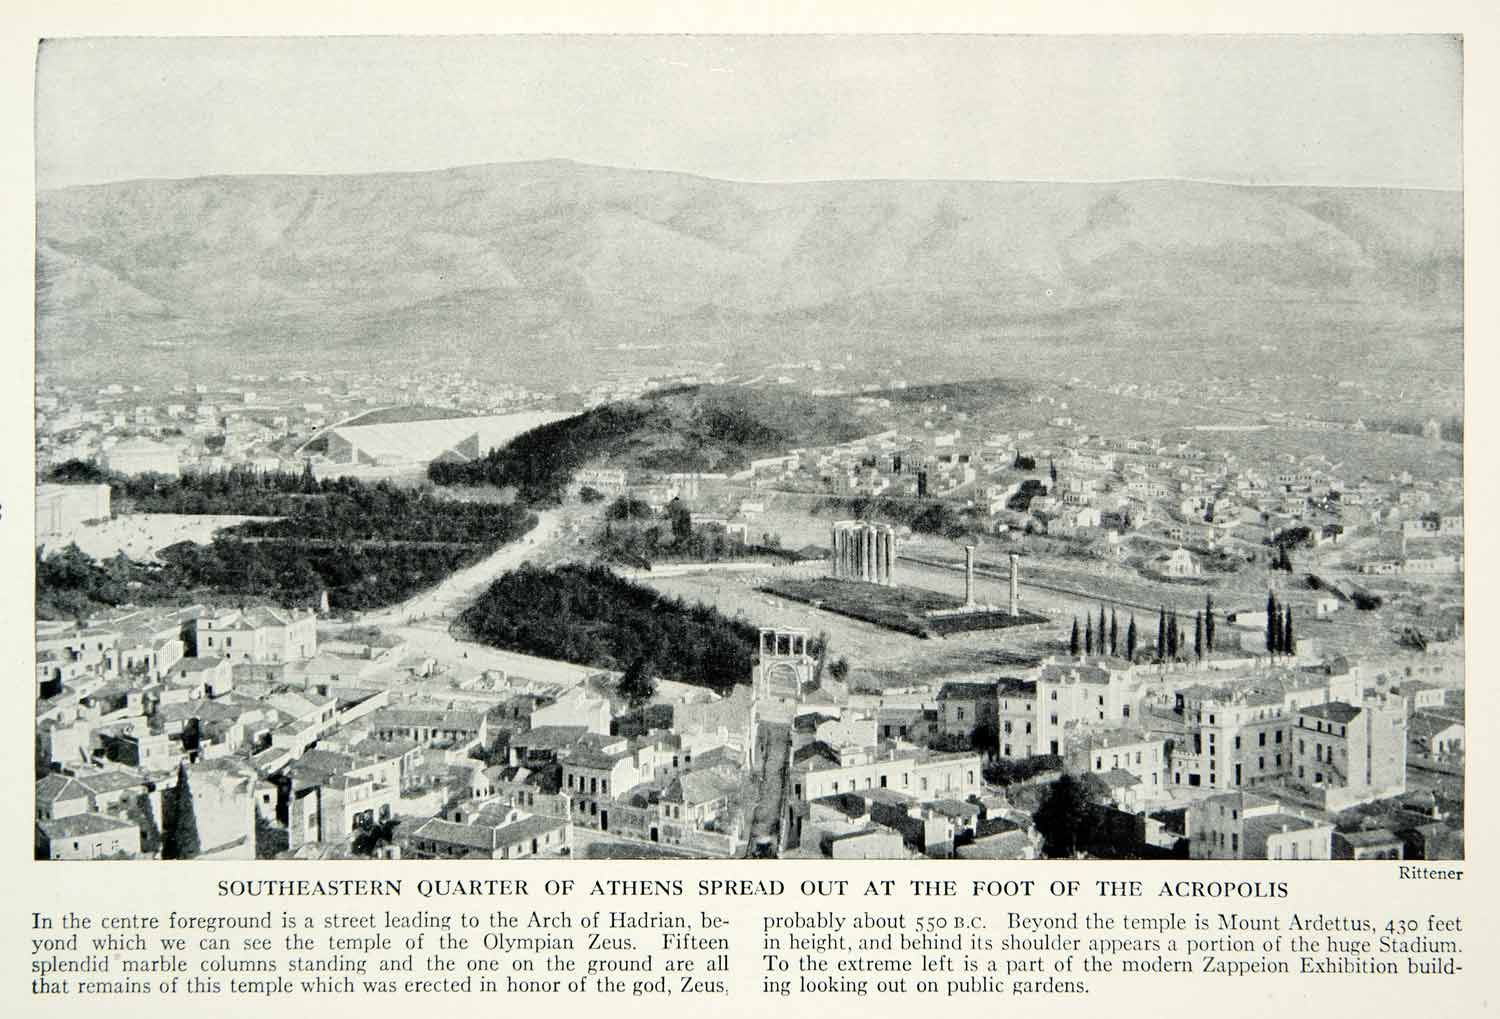 1938 Print Acropolis Architecture Athens Greece Cityscape Historical Image XGGD4